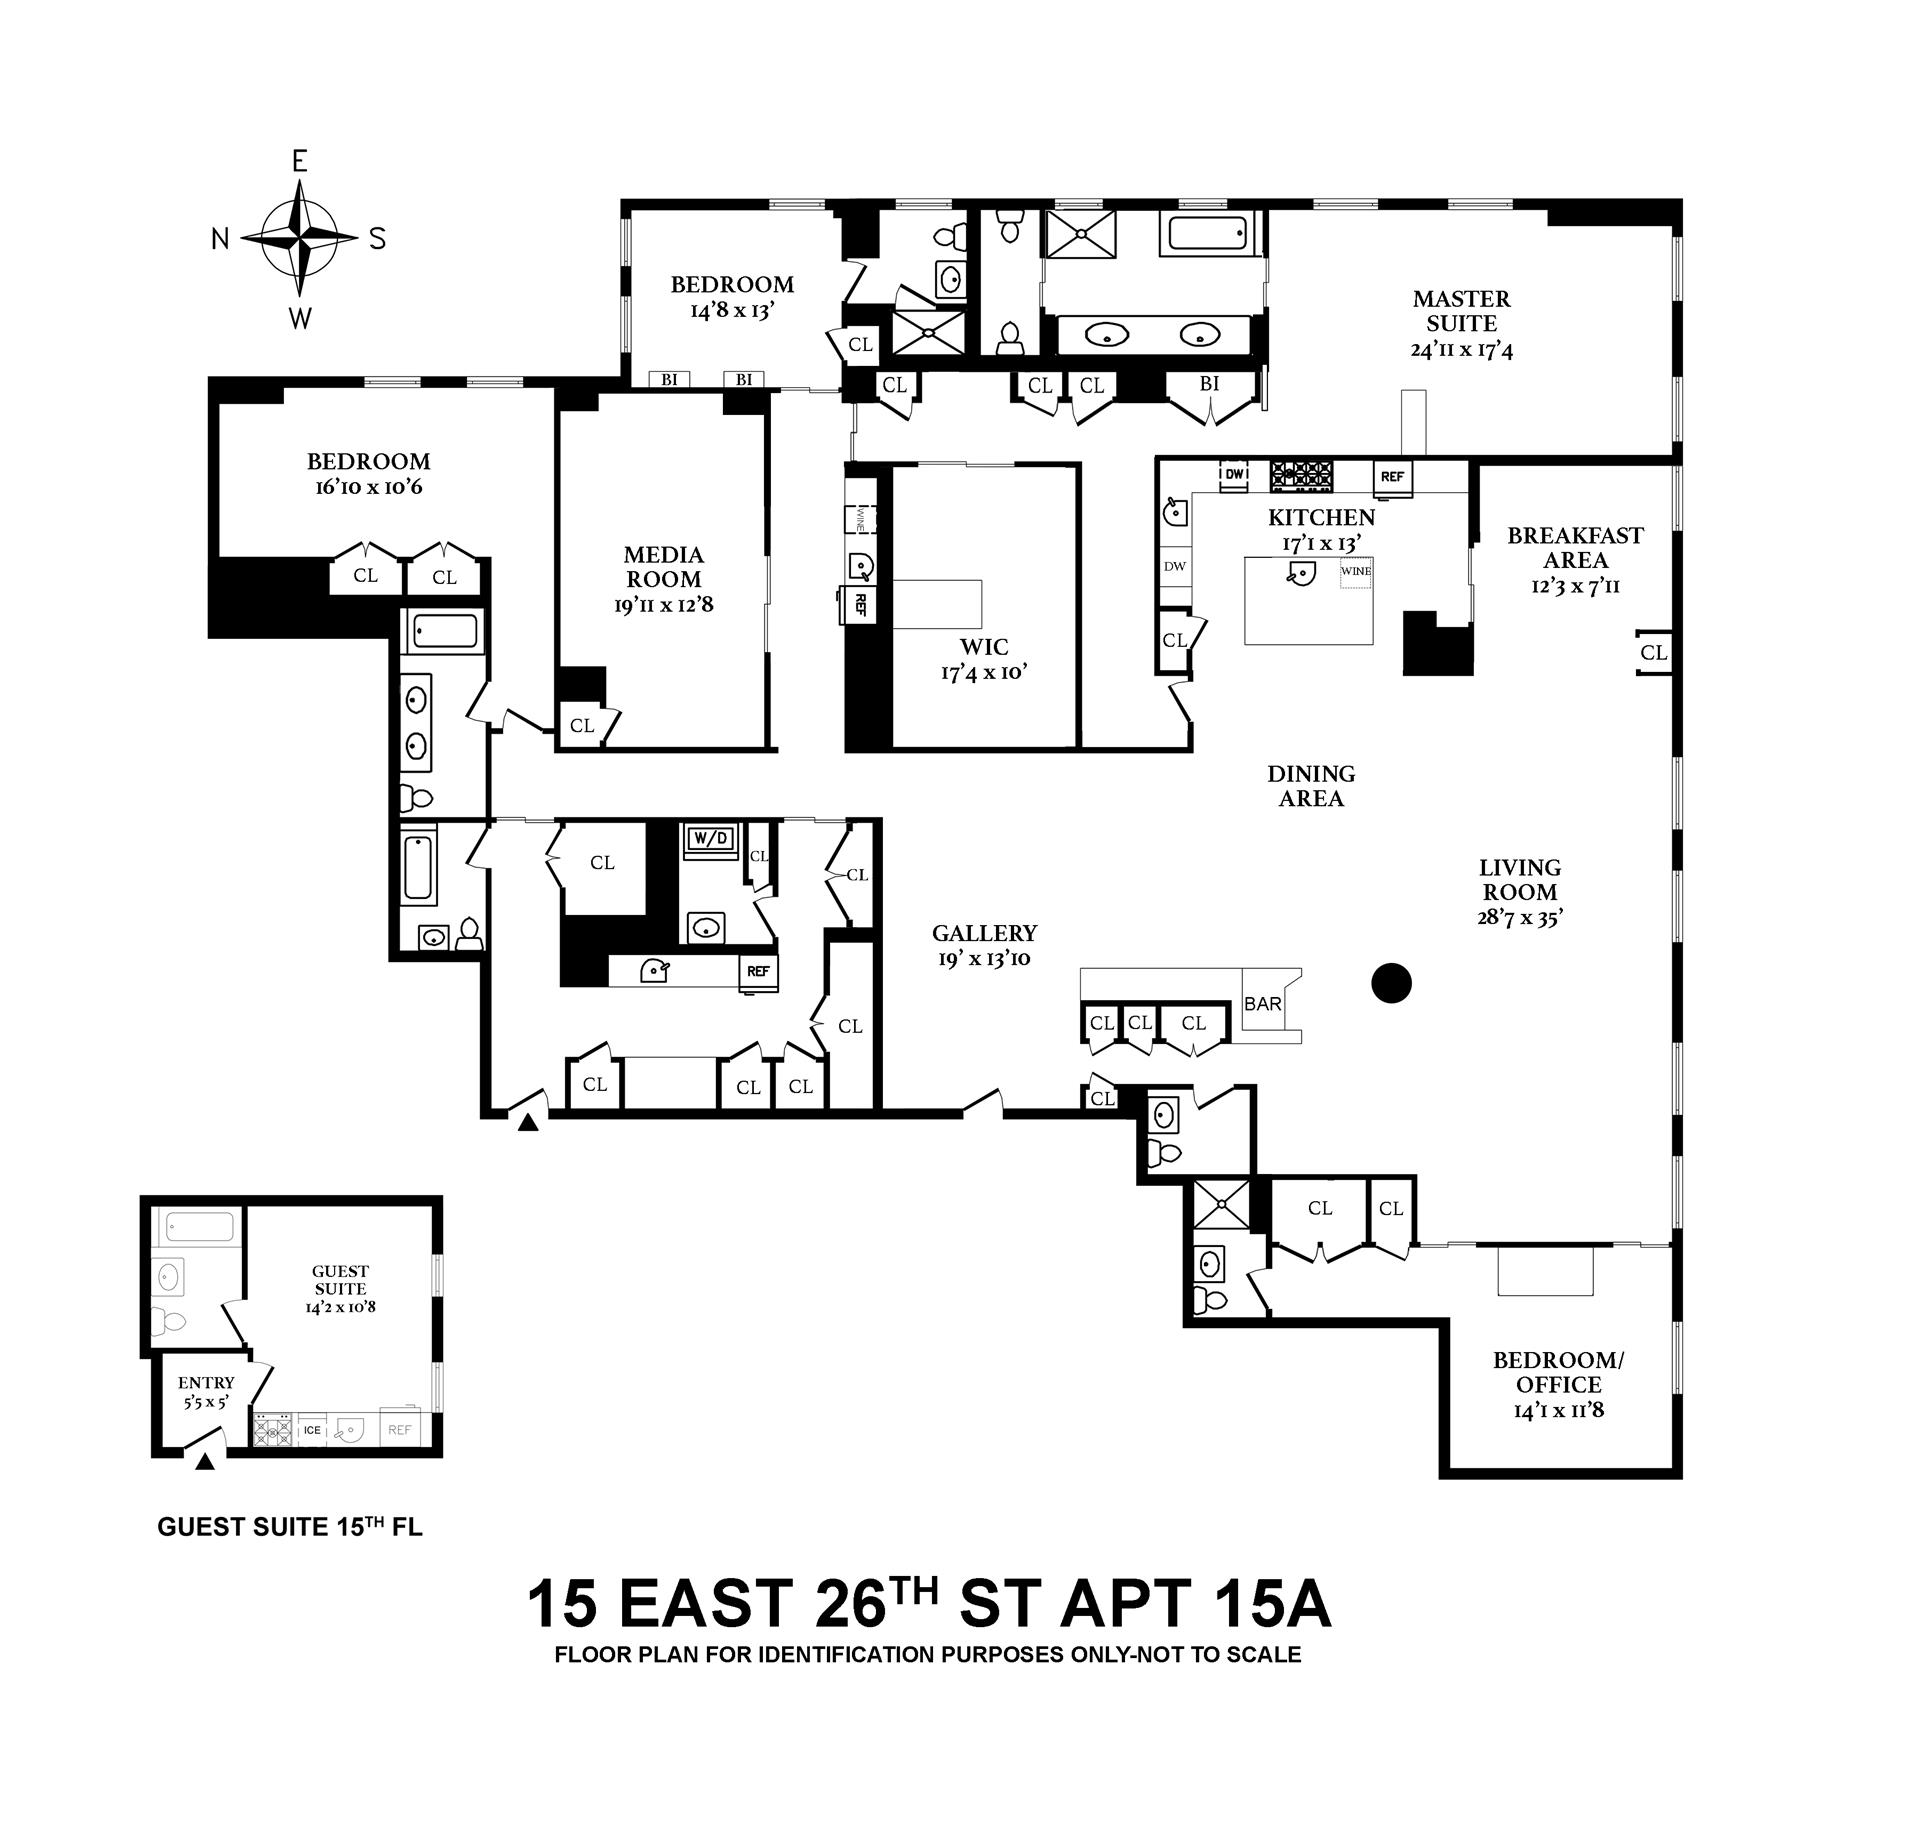 Floor plan of Fifteen Madison Square North, 15 East 26th St, 15AB - Flatiron District, New York